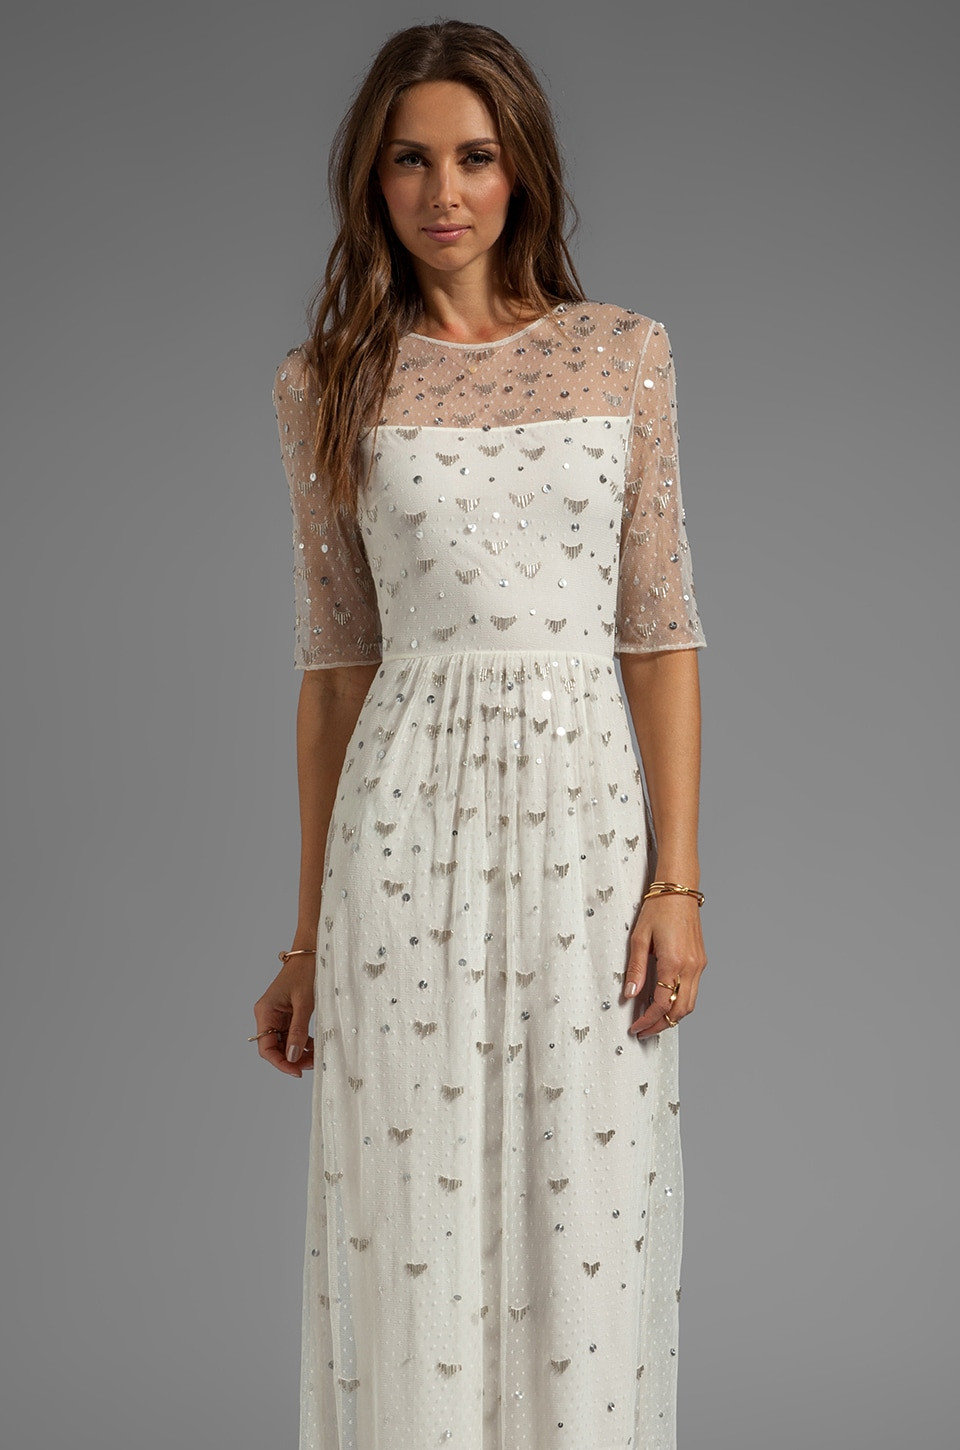 Alice by Temperley Sapphire Long Dress in Ivory/Silver